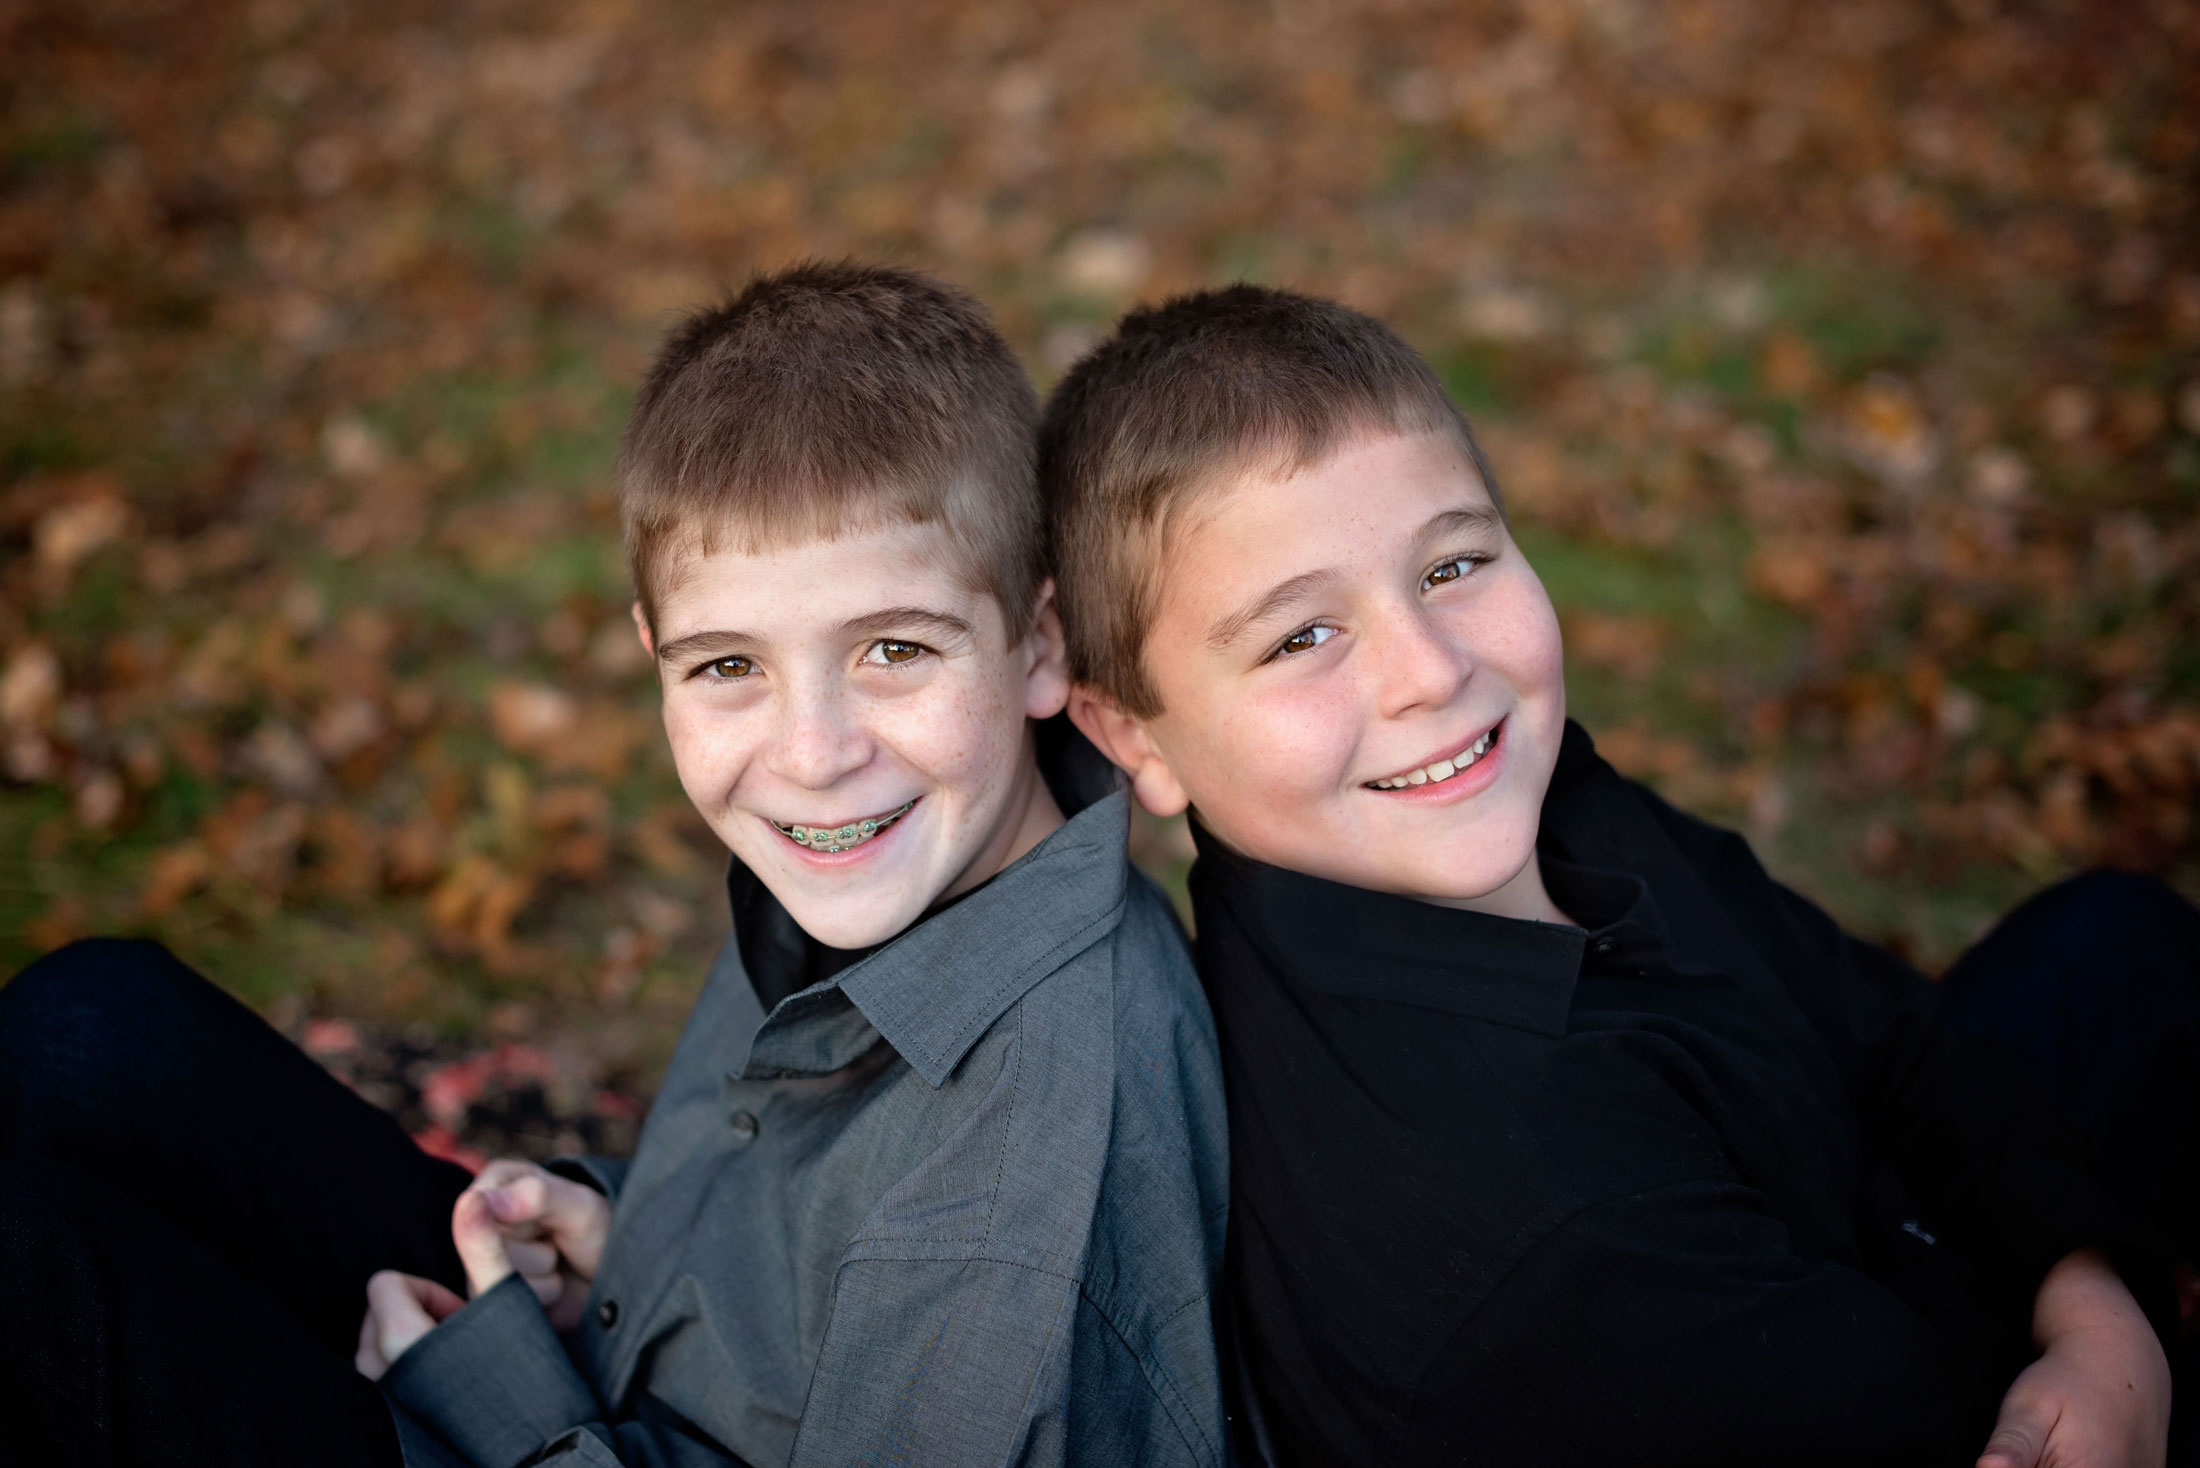 Family-Portrait-Siblings-Fall-Central-MA.jpg